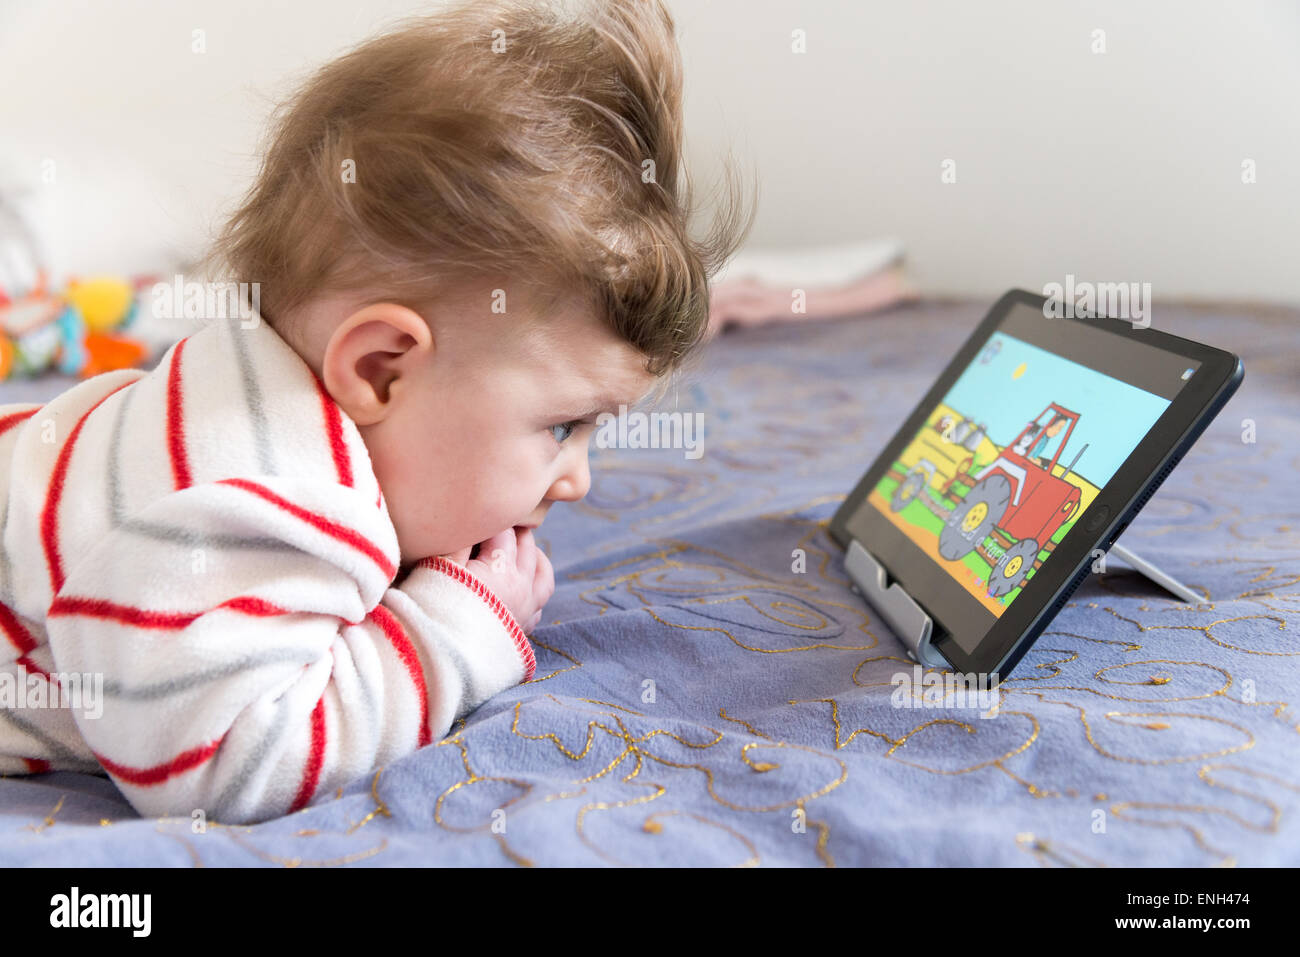 Six Month Old Baby Watching Nursery Rhrymes On Youtube On